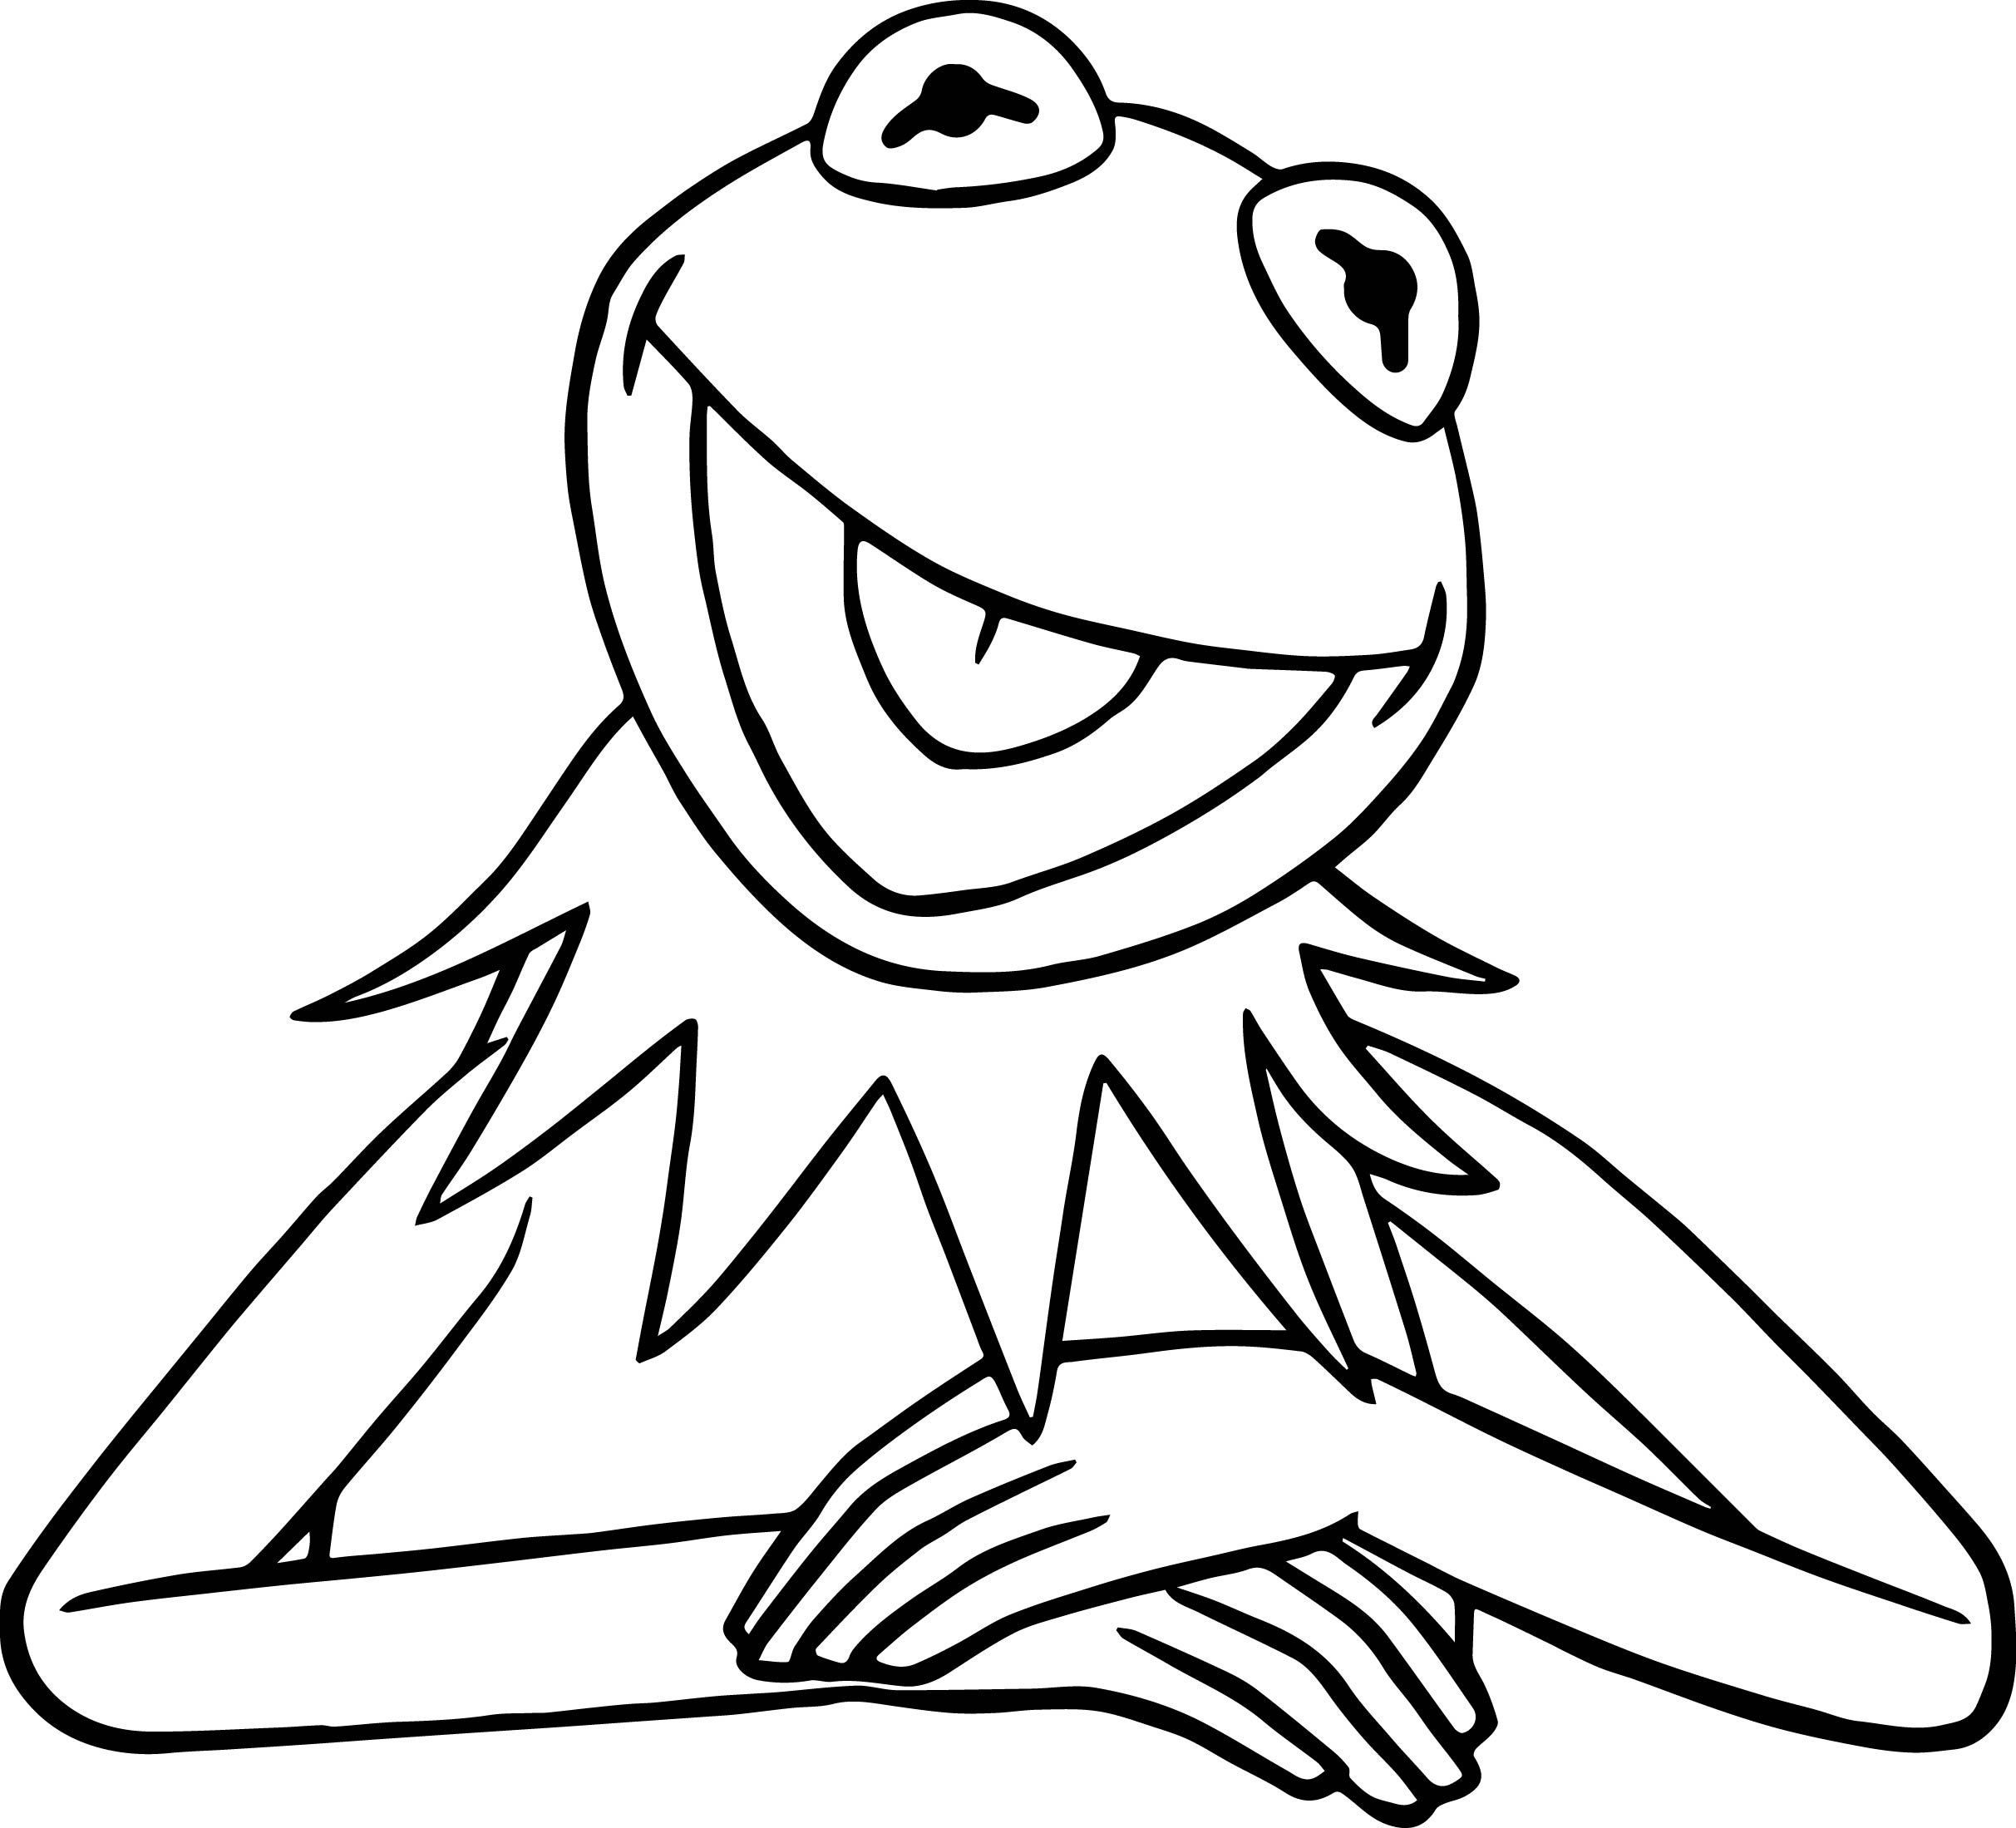 drawing kermit the frog kermit the frog drawings step by step smithcoreview the drawing kermit frog